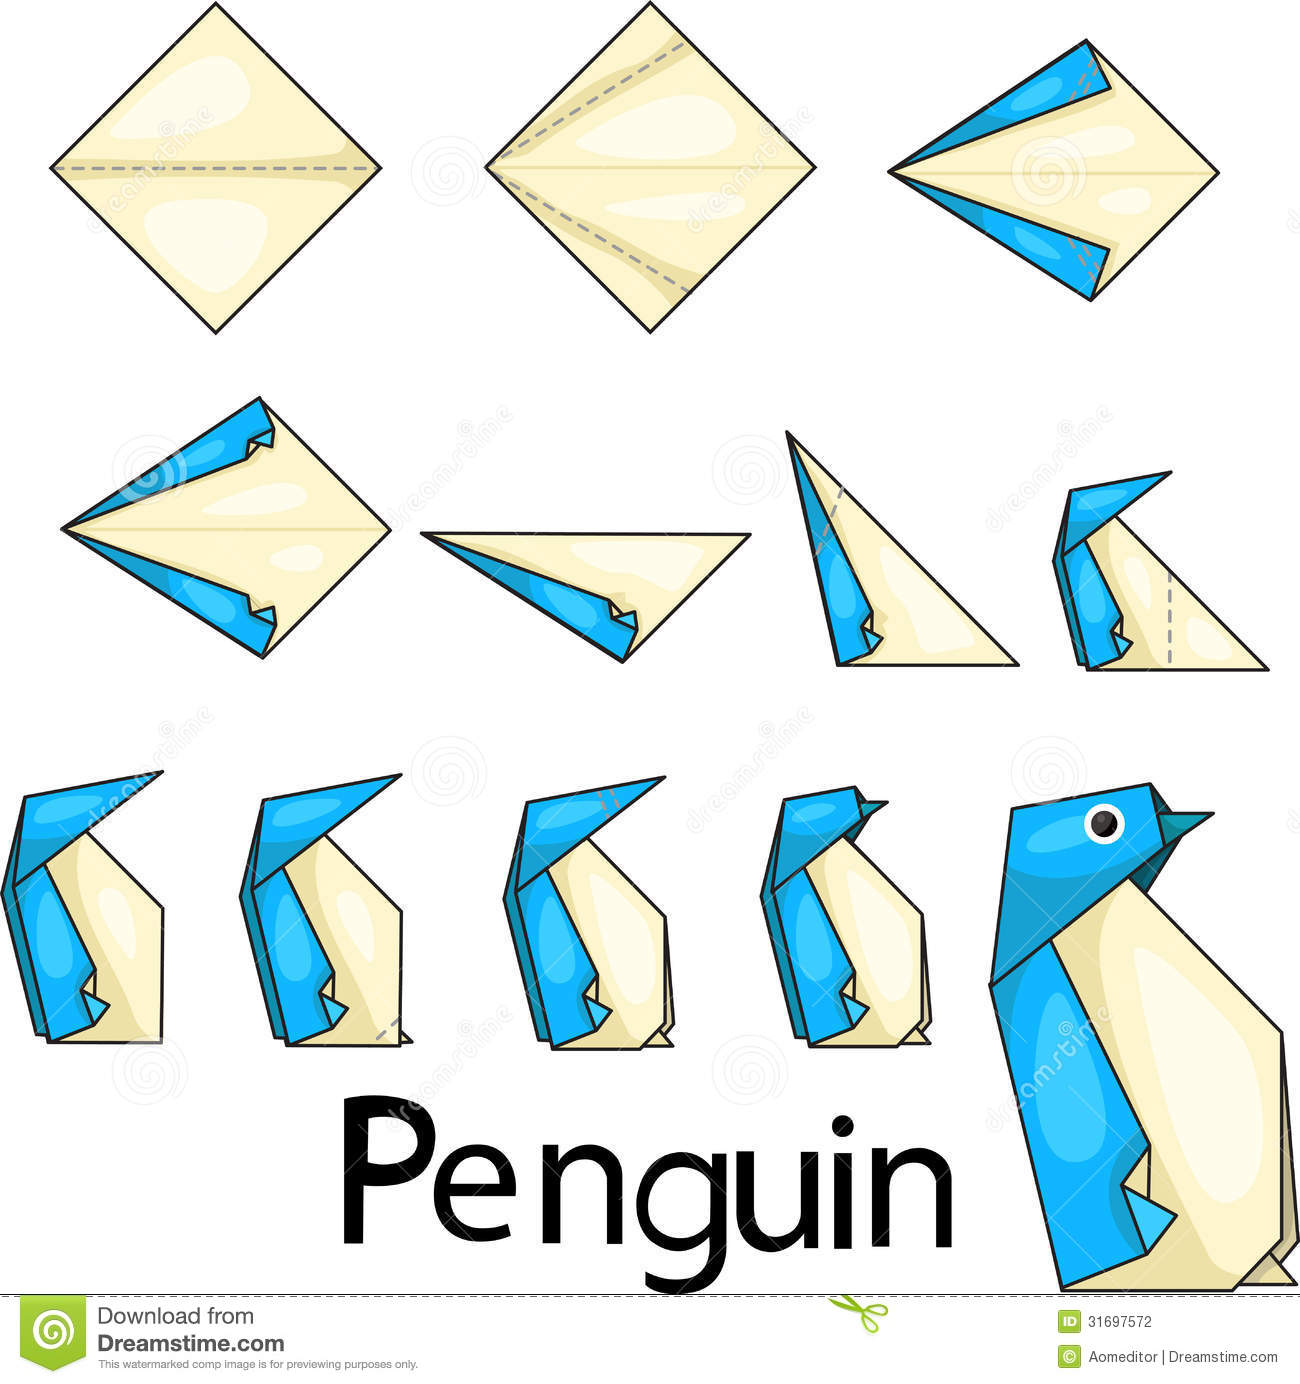 Full choice unit lessons tes teach origami rat stock photo image 31697600 jeuxipadfo Images